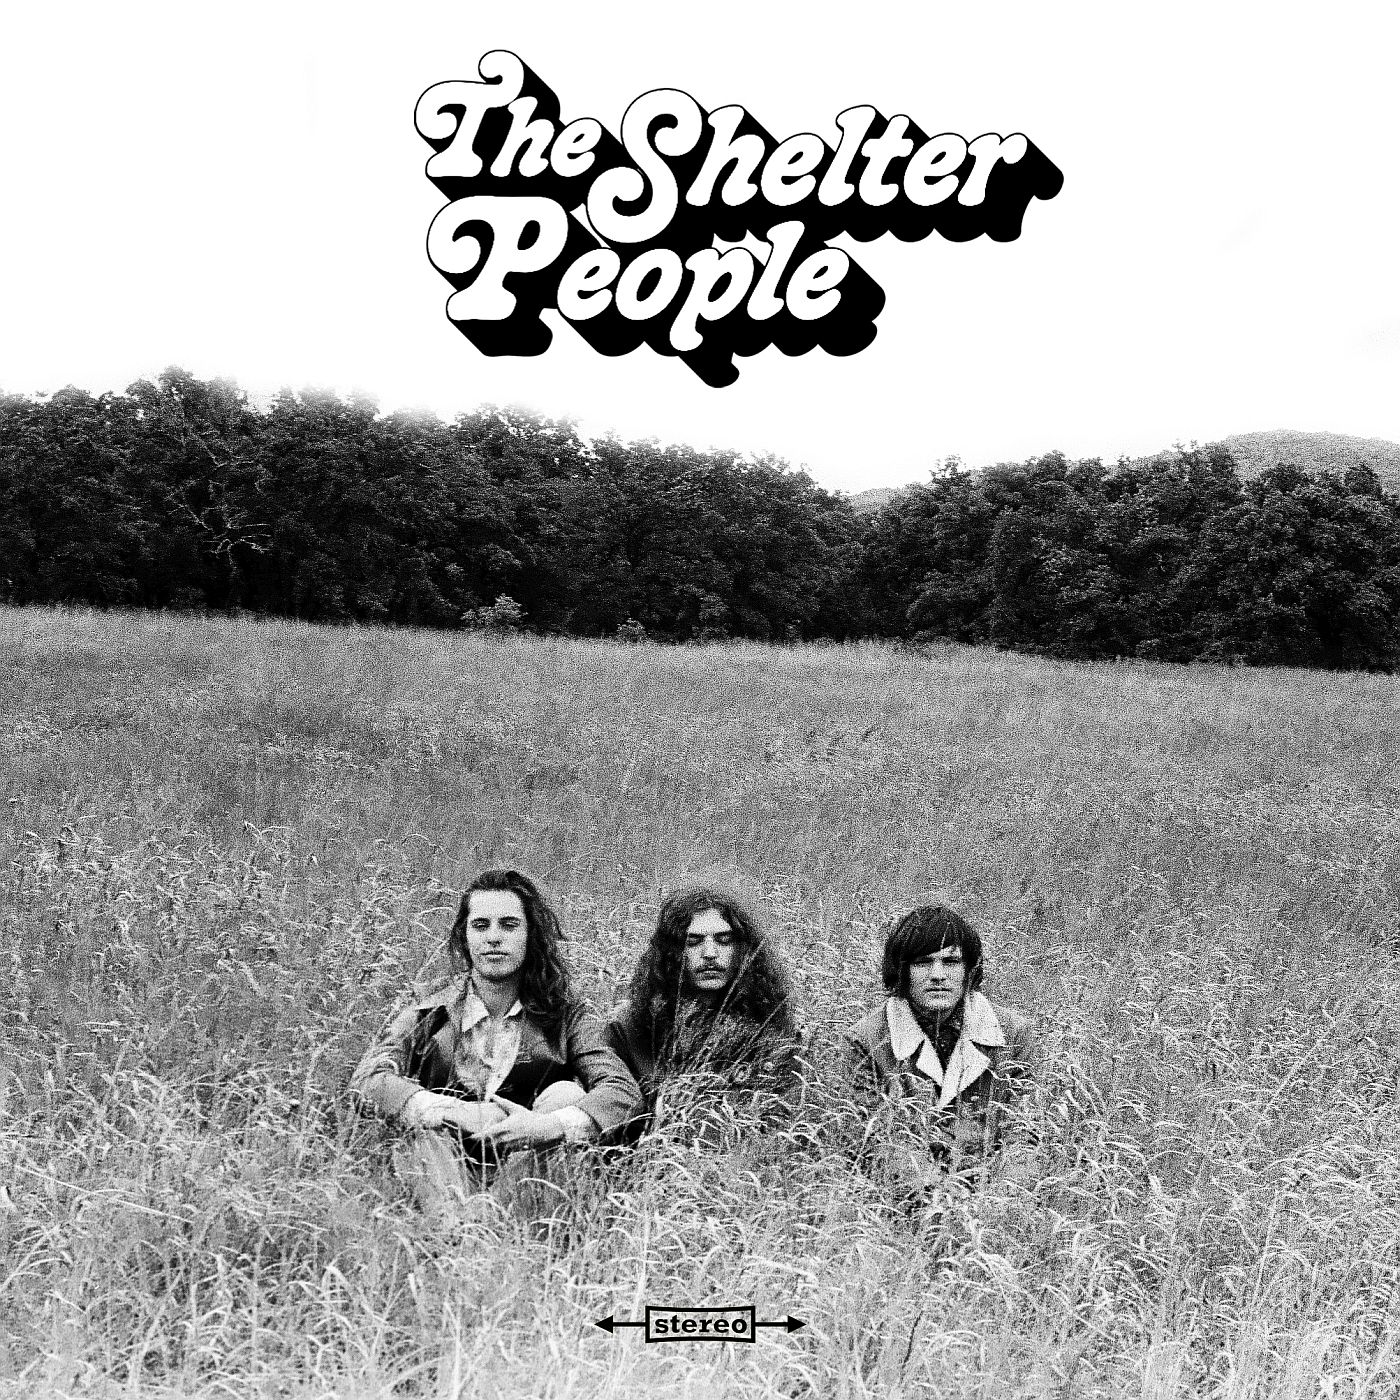 Venenos do rock the shelter people the shelter people full ep 2017 the shelter people the shelter people full ep 2017 fandeluxe Image collections